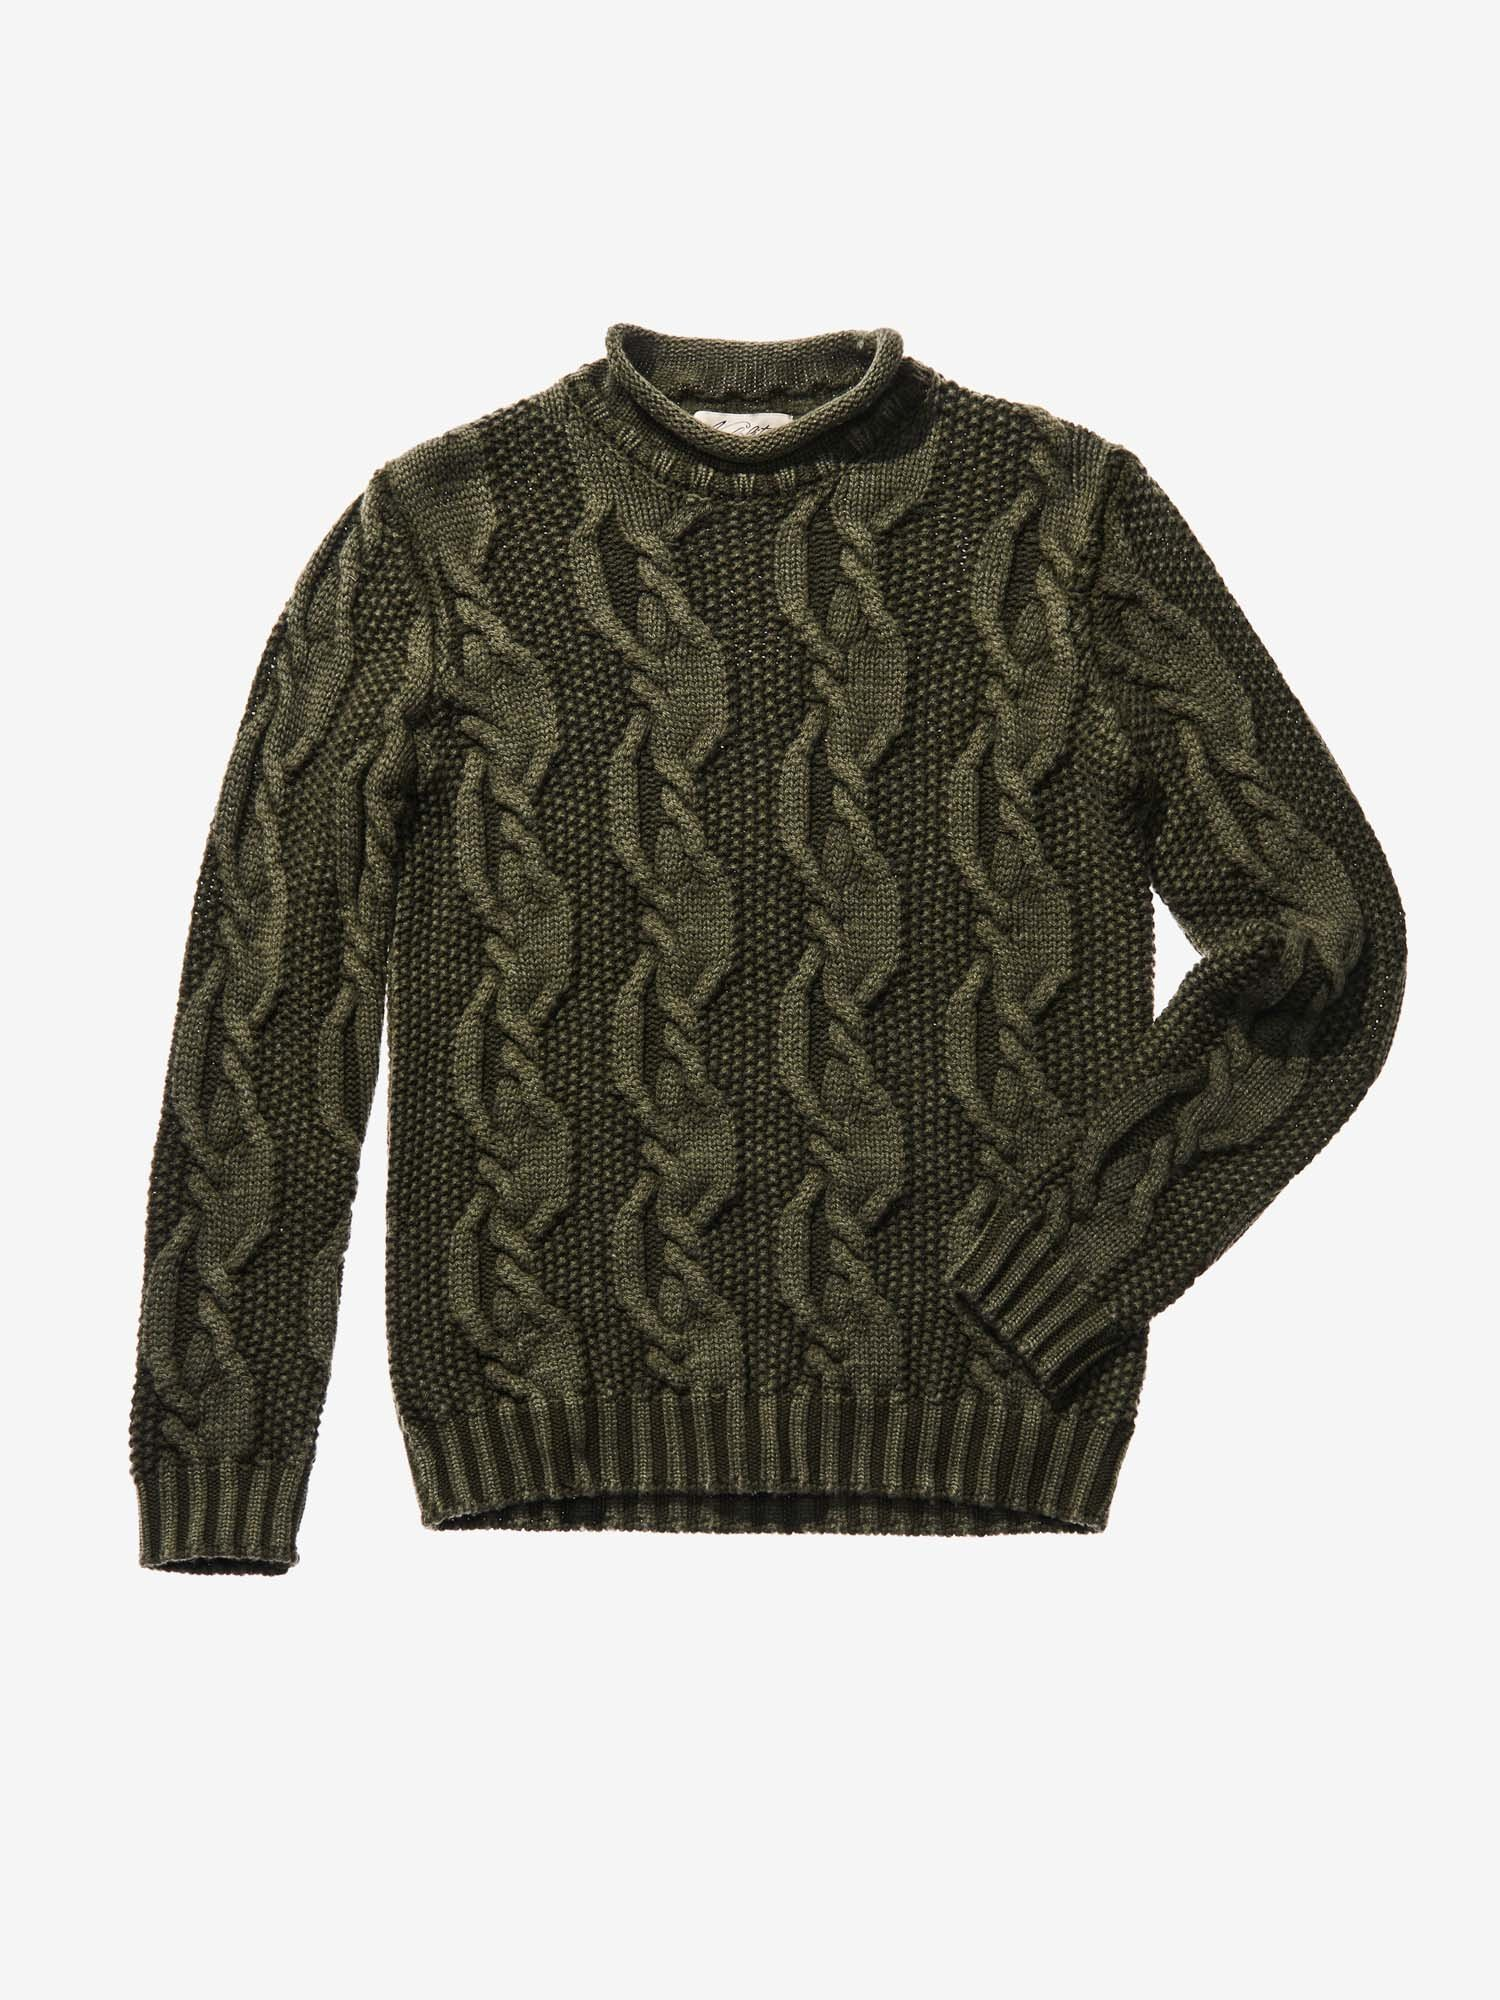 Blauer - CHUNKY CABLE KNIT JUMPER IN KHAKI - OLIVE GREEN - Blauer